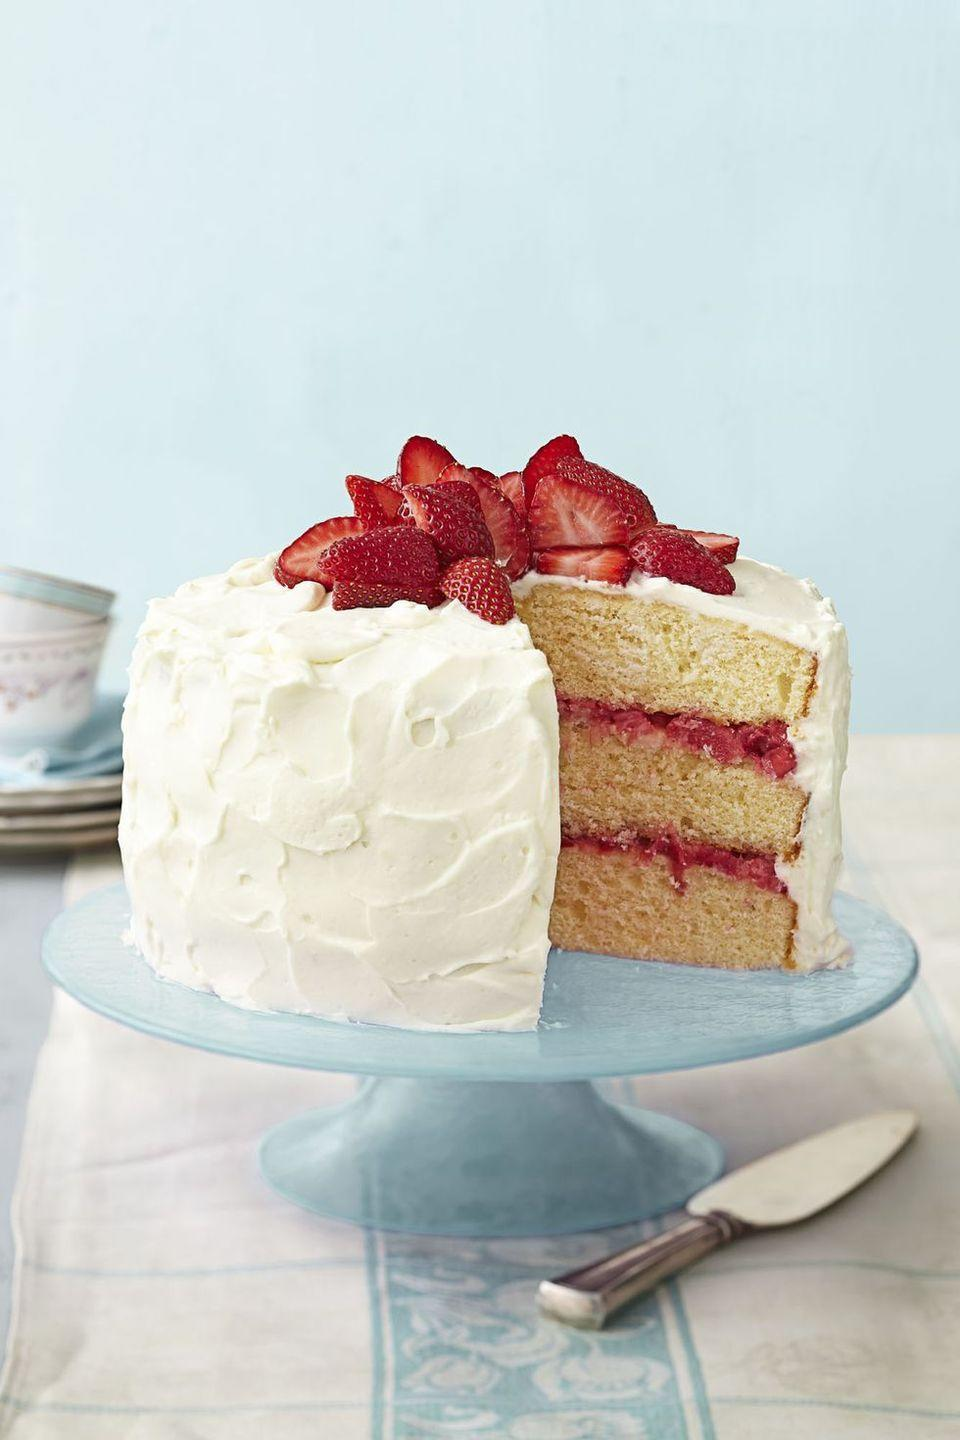 """<p>Even with sweet cream cheese frosting and light and fluffy vanilla cake, it's the fruity rhubarb compote that steals the show with this dessert. Top with some blueberries for a red, white and blue twist.</p><p><em><a href=""""https://www.goodhousekeeping.com/food-recipes/a15071/strawberry-rhubarb-layer-cake-recipe-ghk0414/"""" rel=""""nofollow noopener"""" target=""""_blank"""" data-ylk=""""slk:Get the recipe for Strawberry Rhubarb Layer Cake"""" class=""""link rapid-noclick-resp"""">Get the recipe for Strawberry Rhubarb Layer Cake</a> <em><a href=""""https://www.goodhousekeeping.com/food-recipes/a10121/cupcake-flag-berries-coconut-ghk0710/"""" rel=""""nofollow noopener"""" target=""""_blank"""" data-ylk=""""slk:»"""" class=""""link rapid-noclick-resp"""">»</a></em></em></p>"""